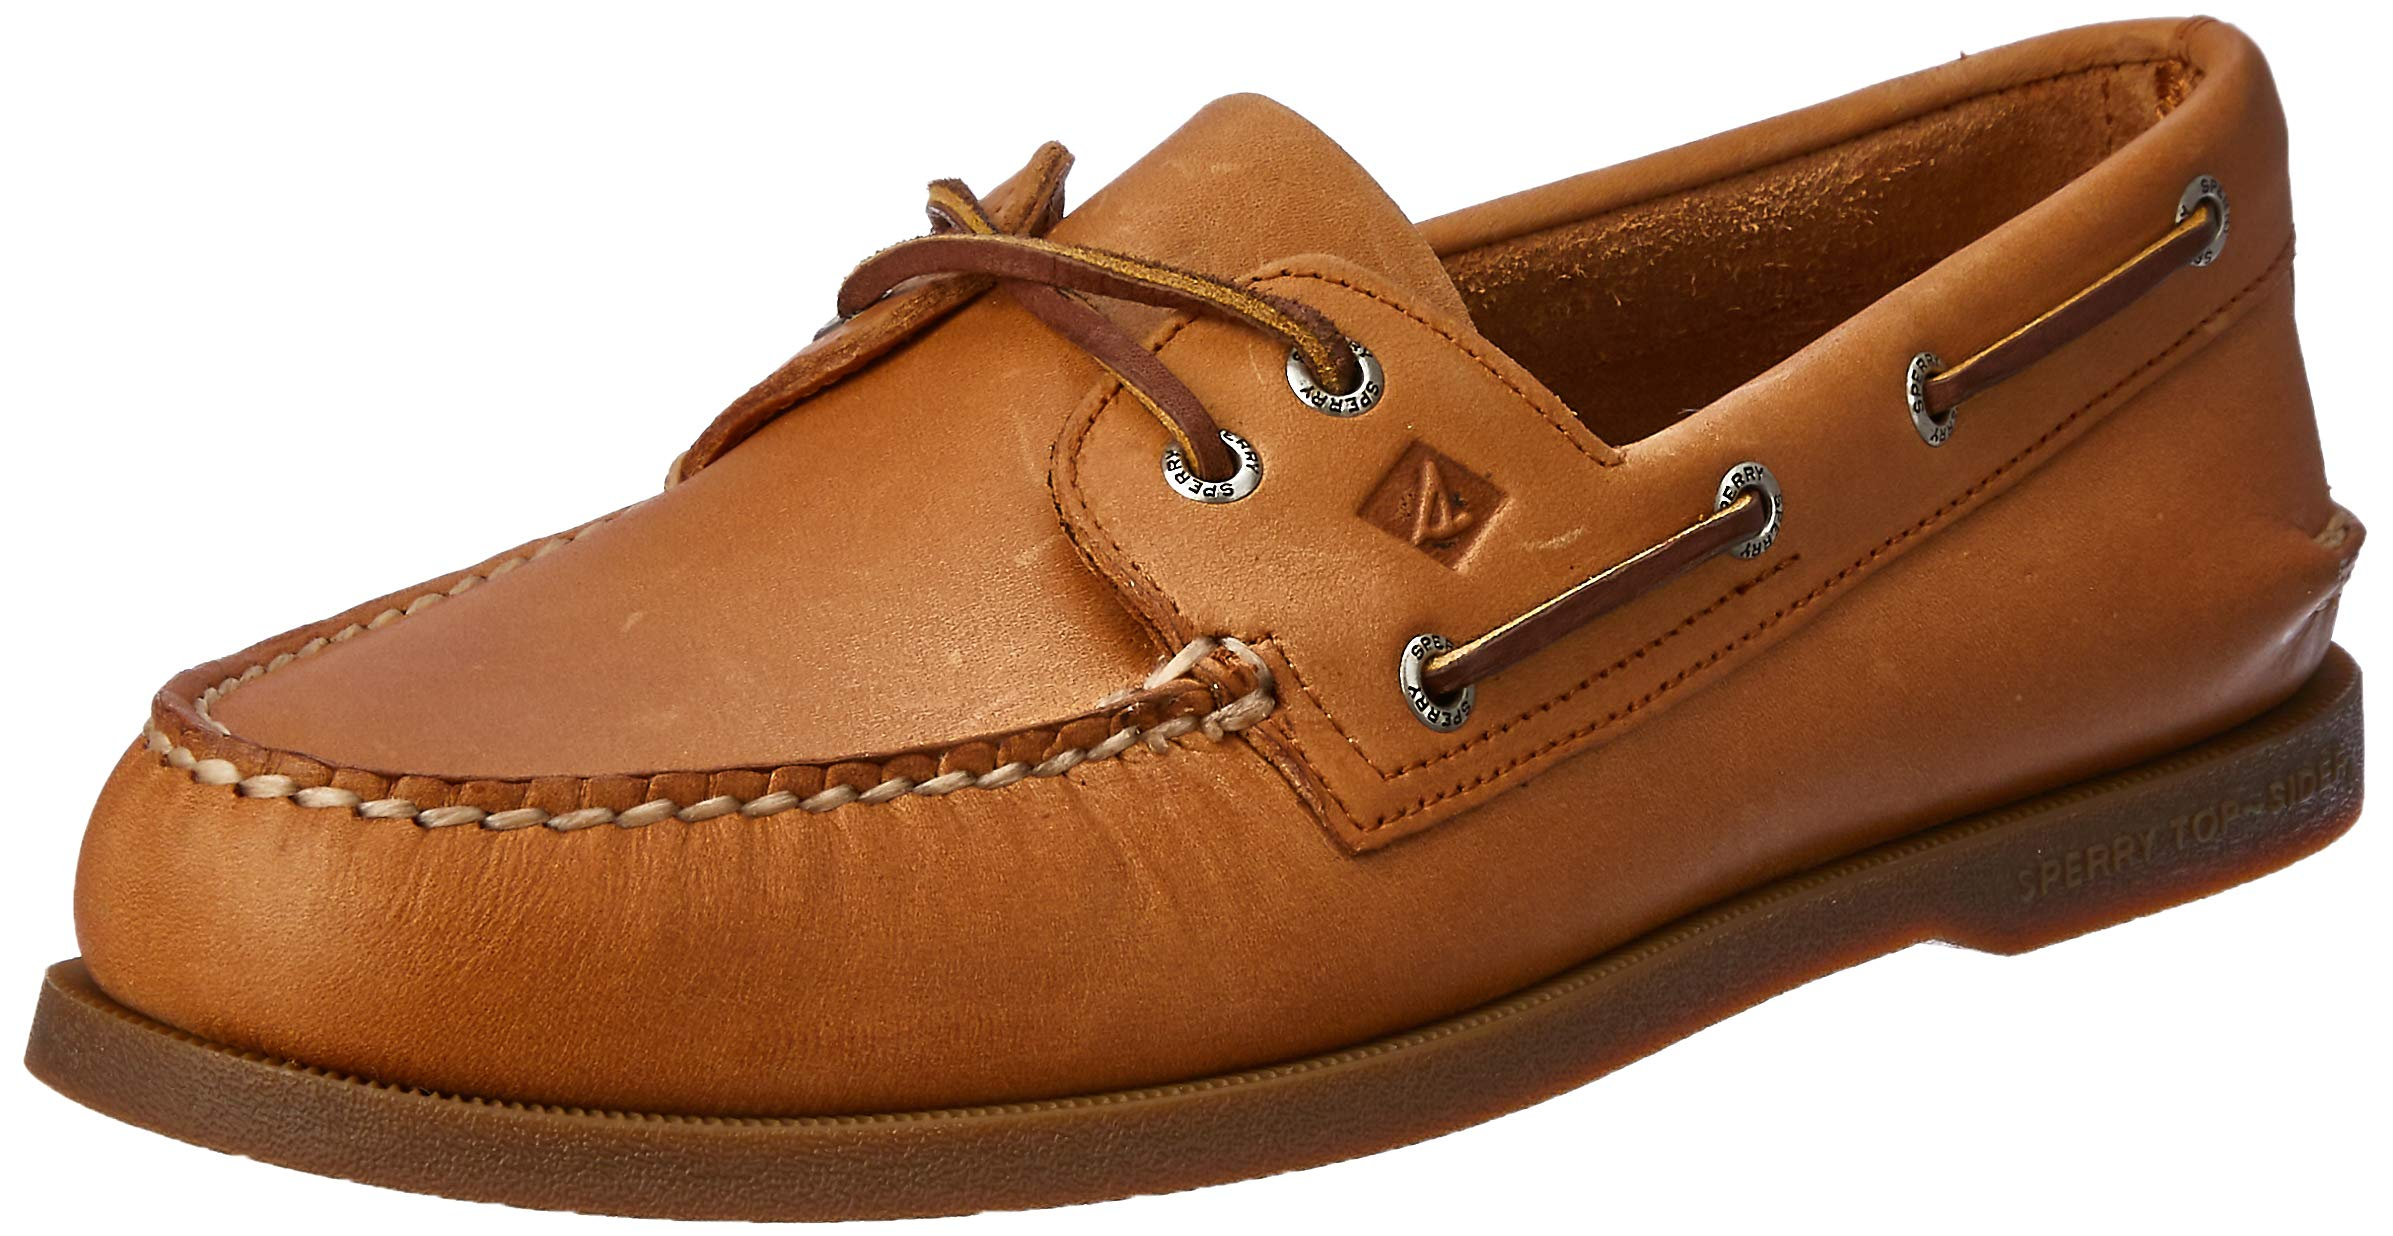 Sperry Top-Sider Authentic Original Leather Boat Shoe Men 13 Sahara Leather by SPERRY (Image #1)